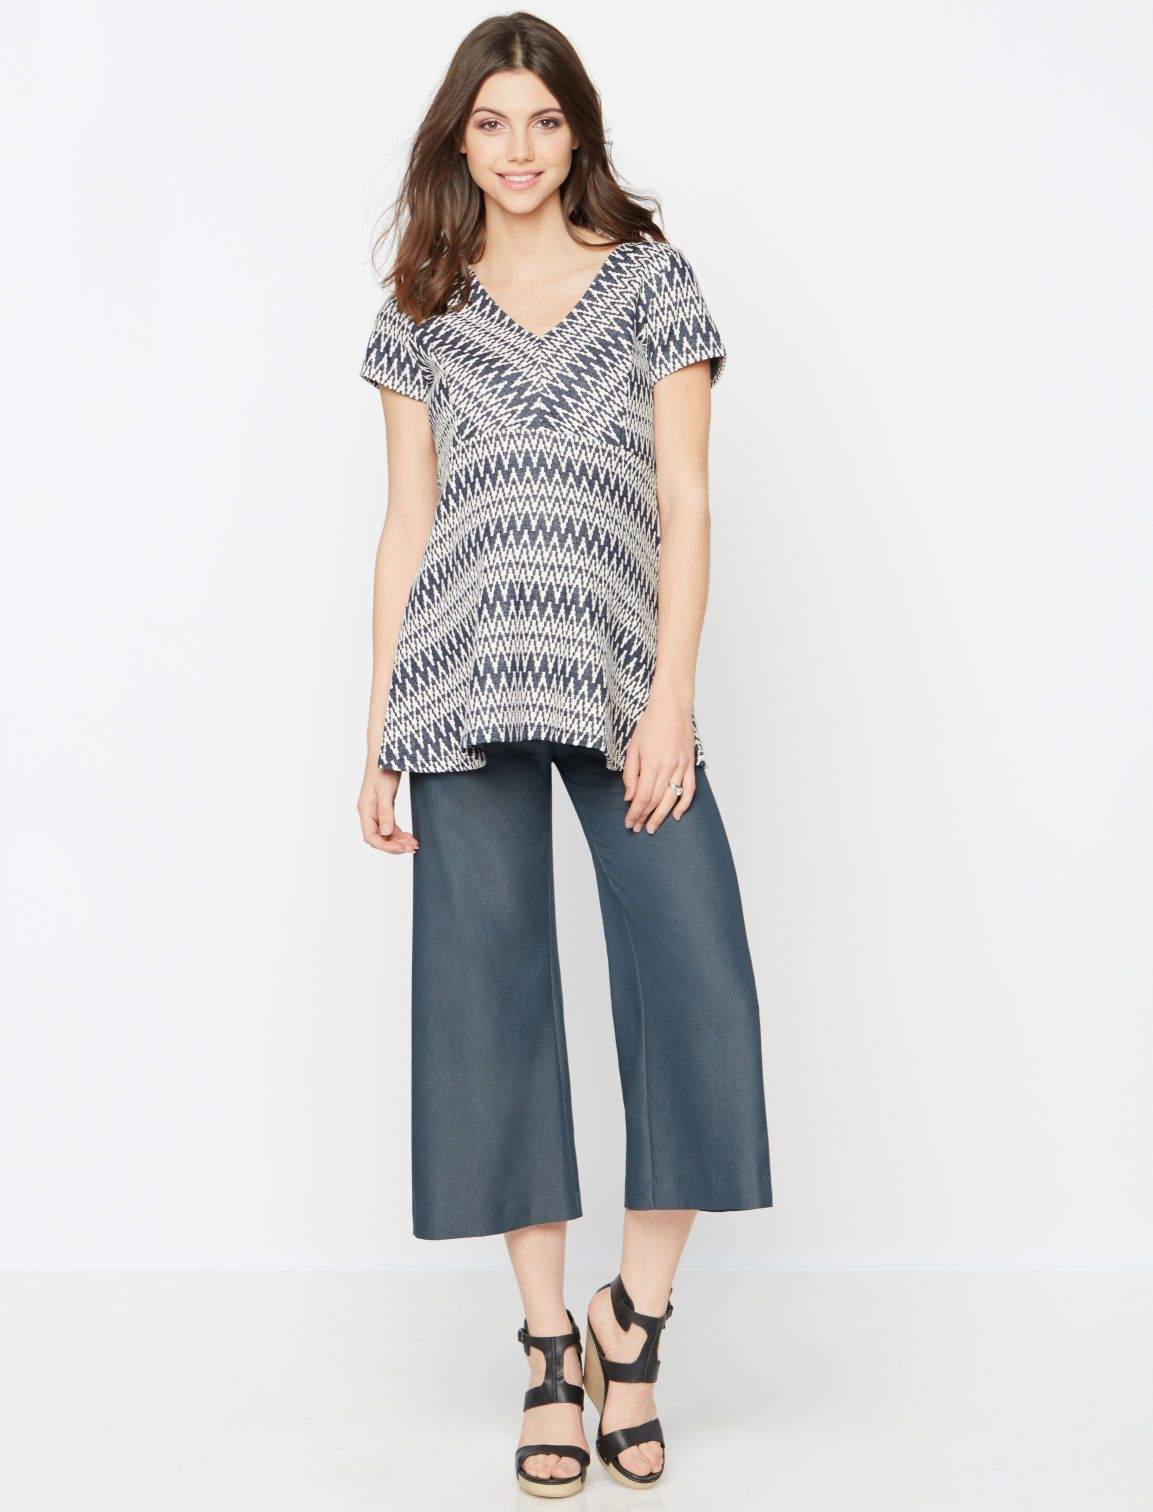 A Pea in the Pod Pietro Brunelli Fold Over Belly Maternity Culotte Pant